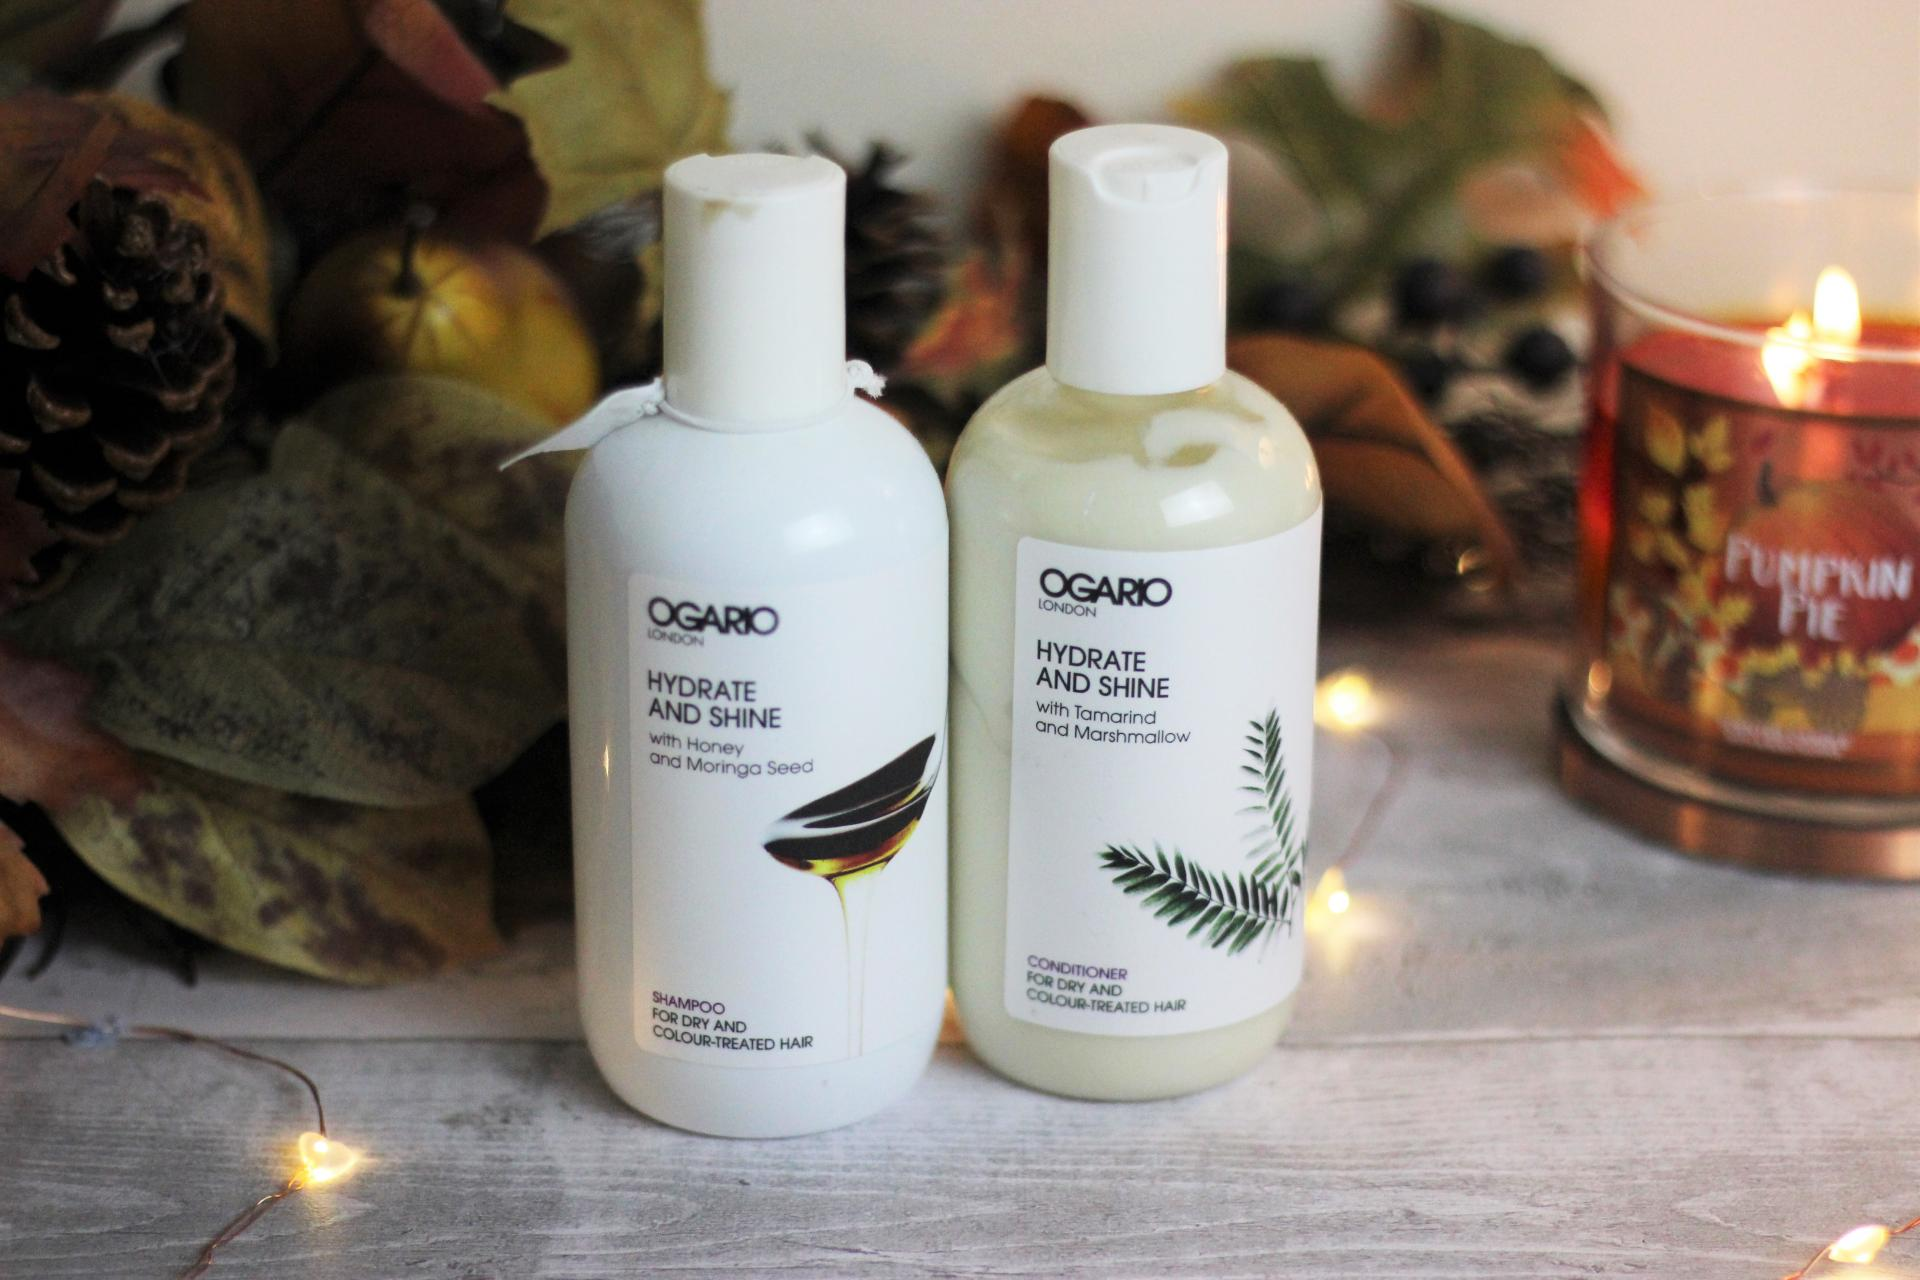 Ogario London Haircare